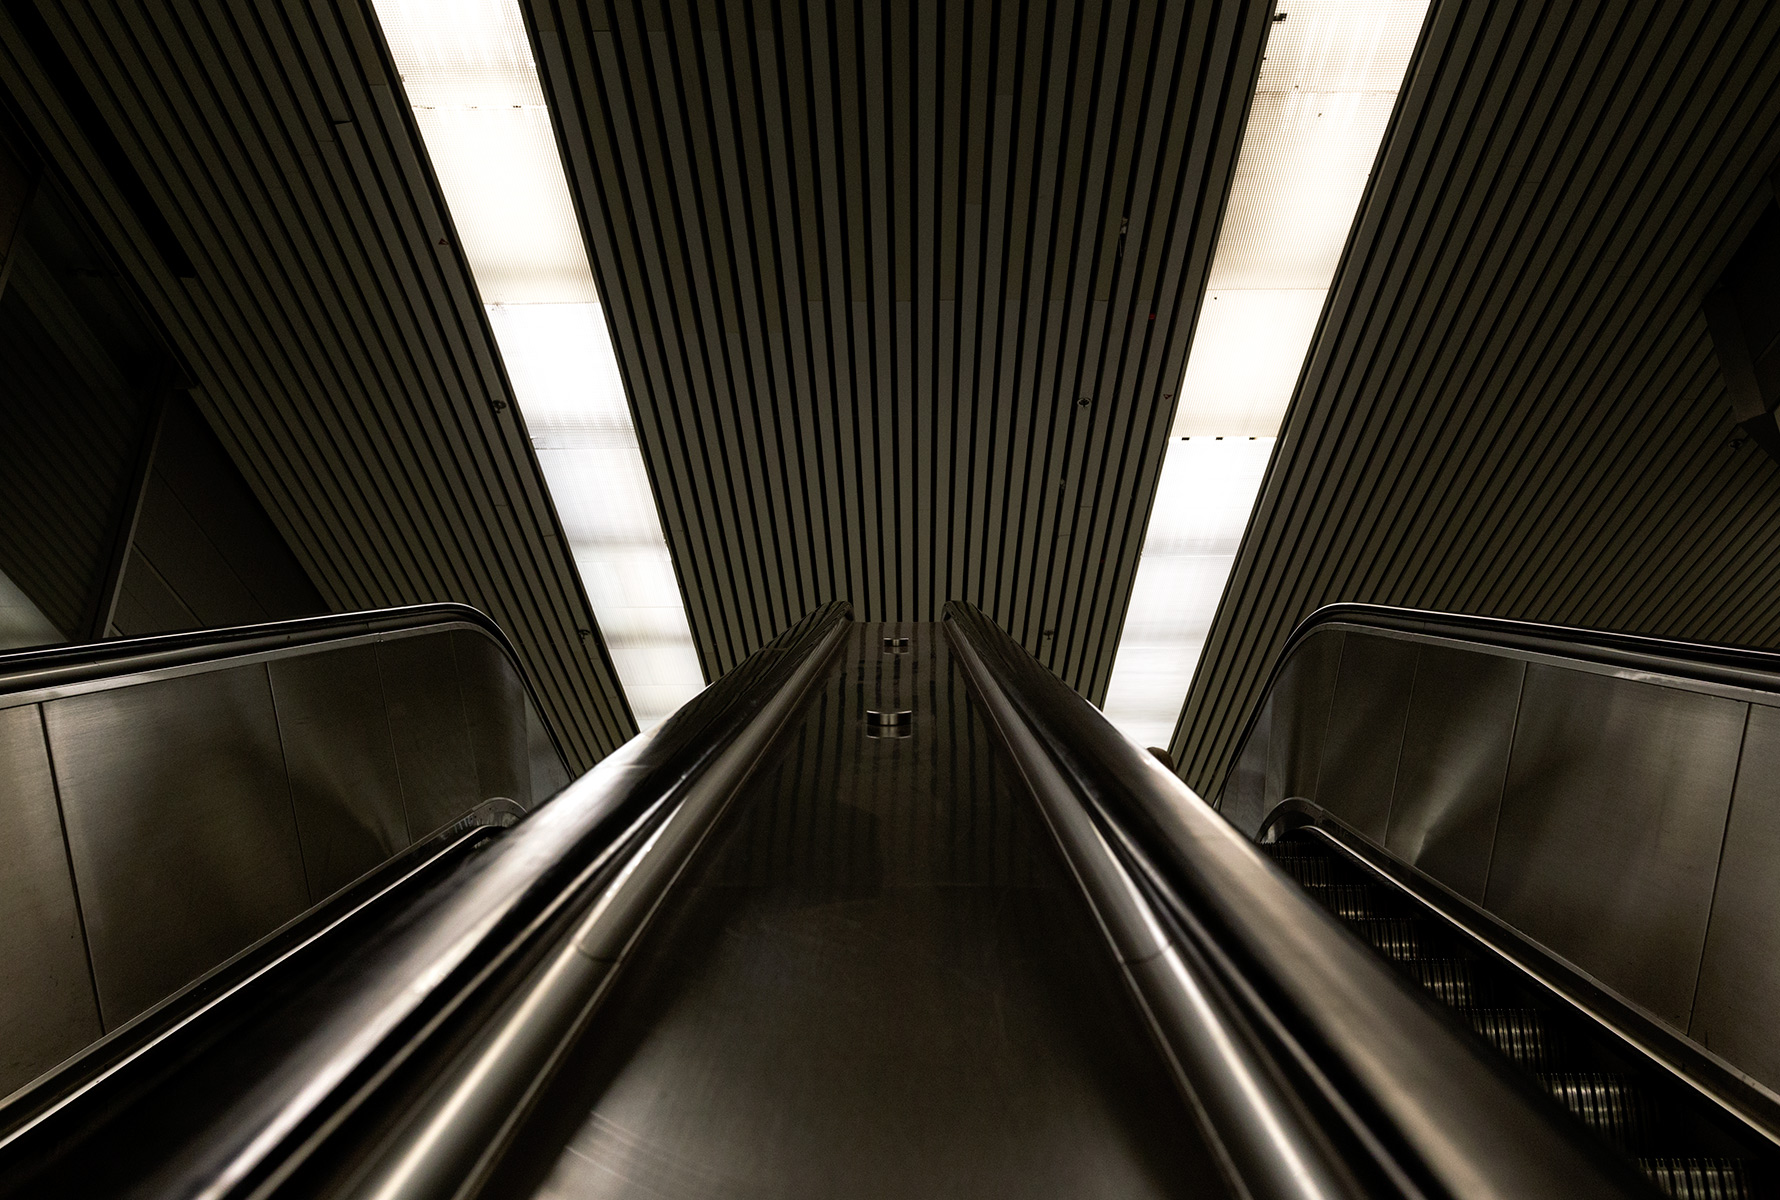 20151015. Seeking symmetry on a moving subway stairway.